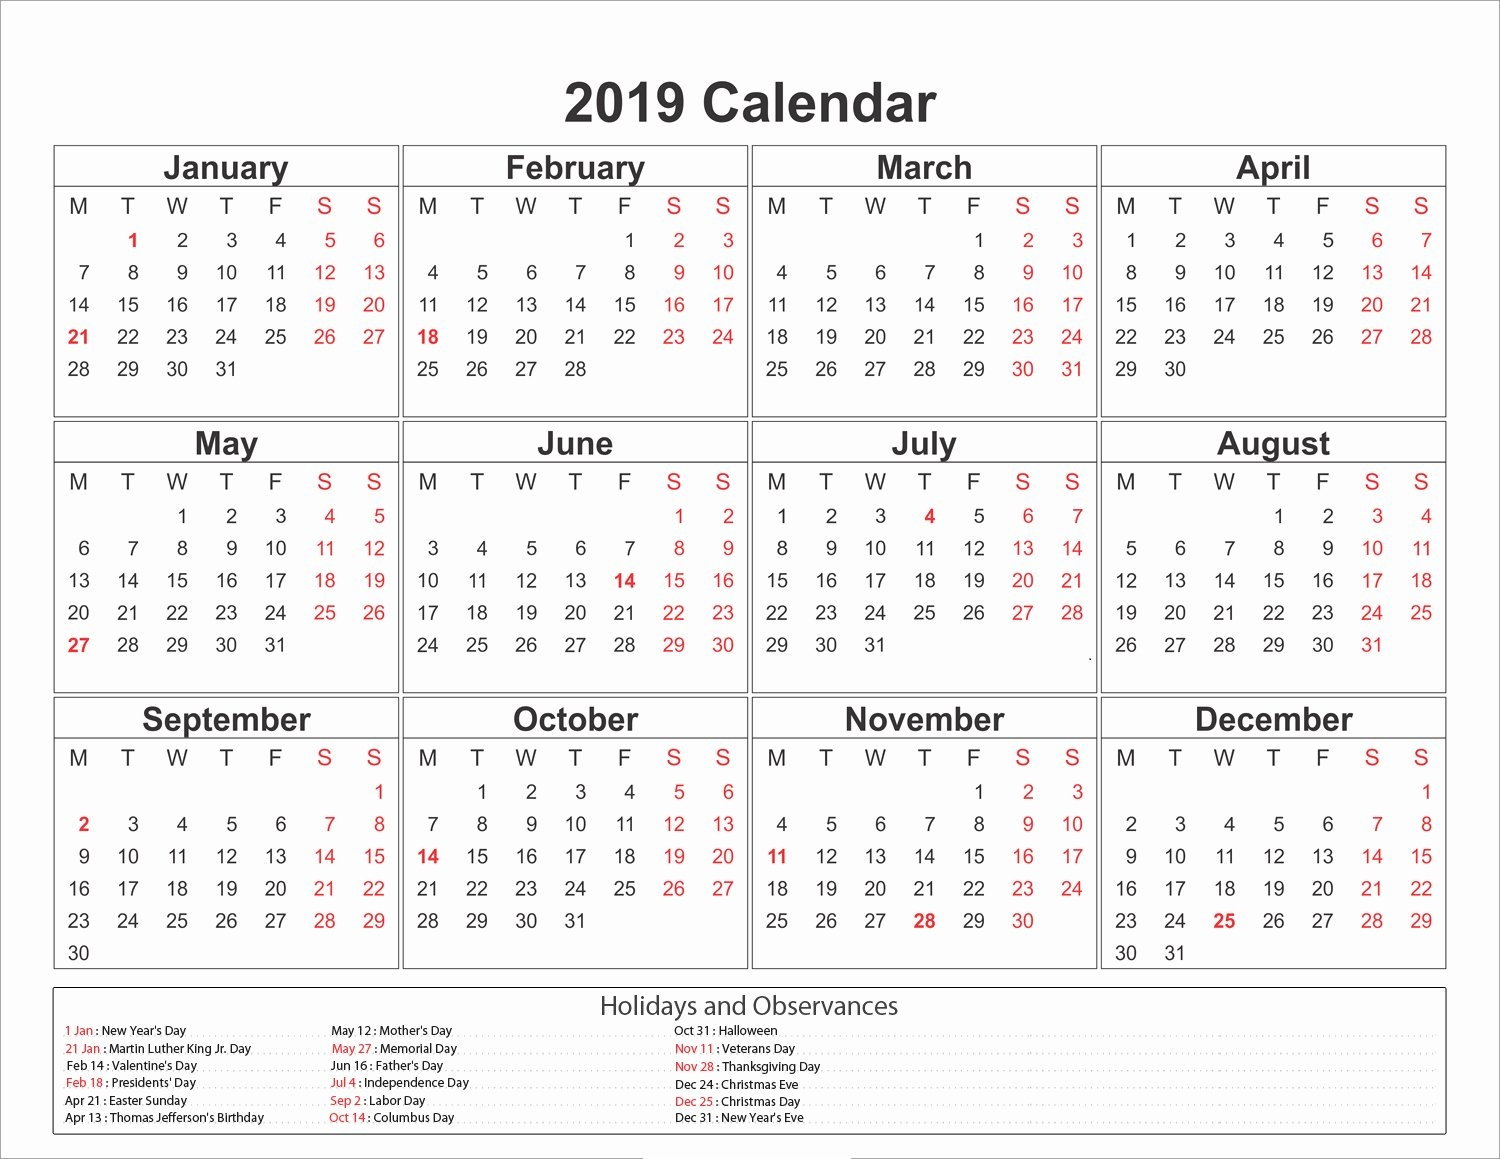 Free Printable Calendar 2019 With Holidays | Blank 12 Month Calendar Calendar 2019 Year Printable Free